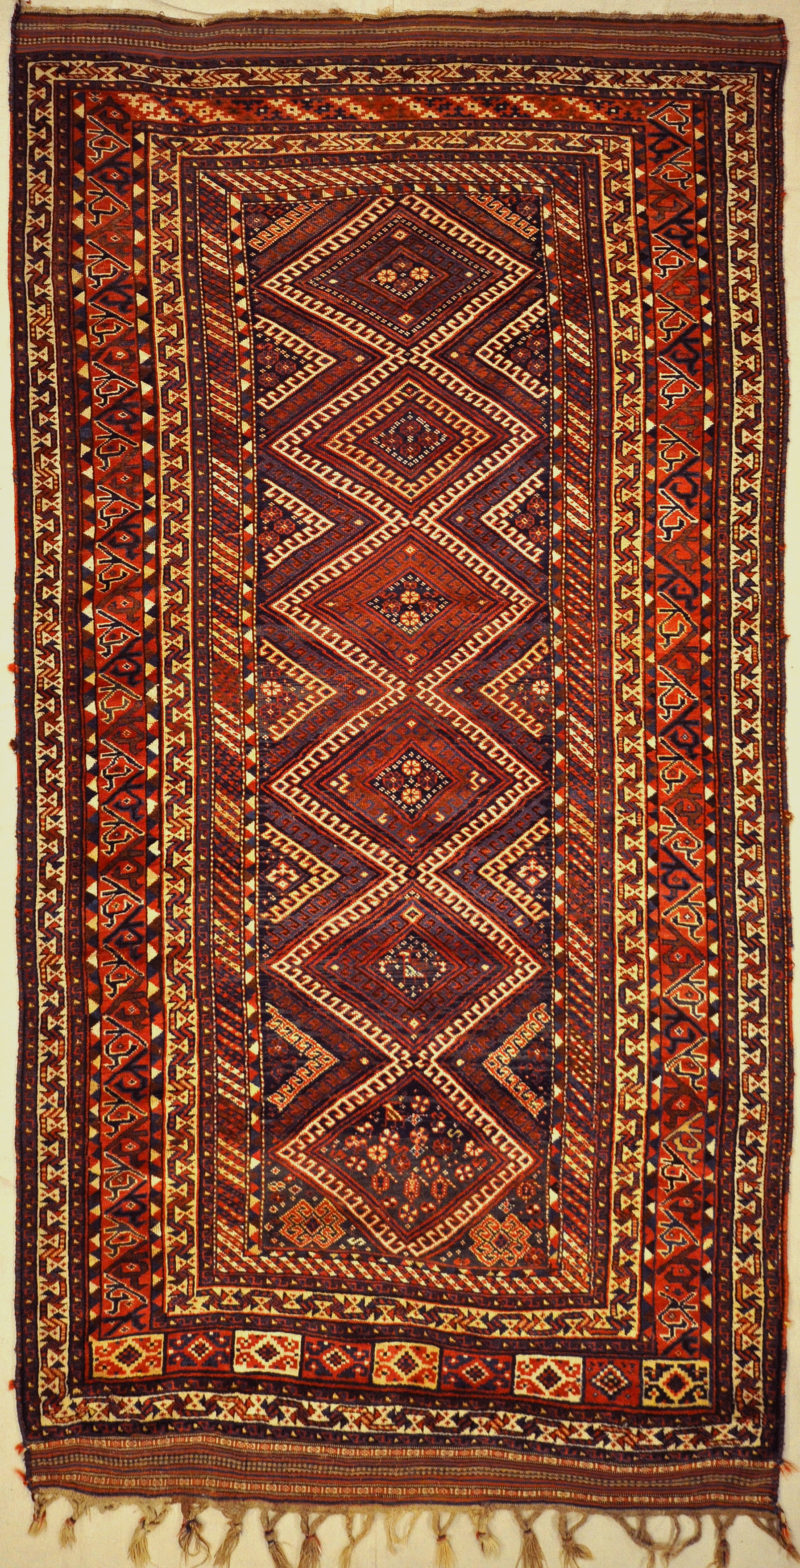 Antique Lori Persian Tribal Rug Circa 1880. A piece of genuine authentic antique woven carpet art sold by Santa Barbara Design Center Rugs and More.